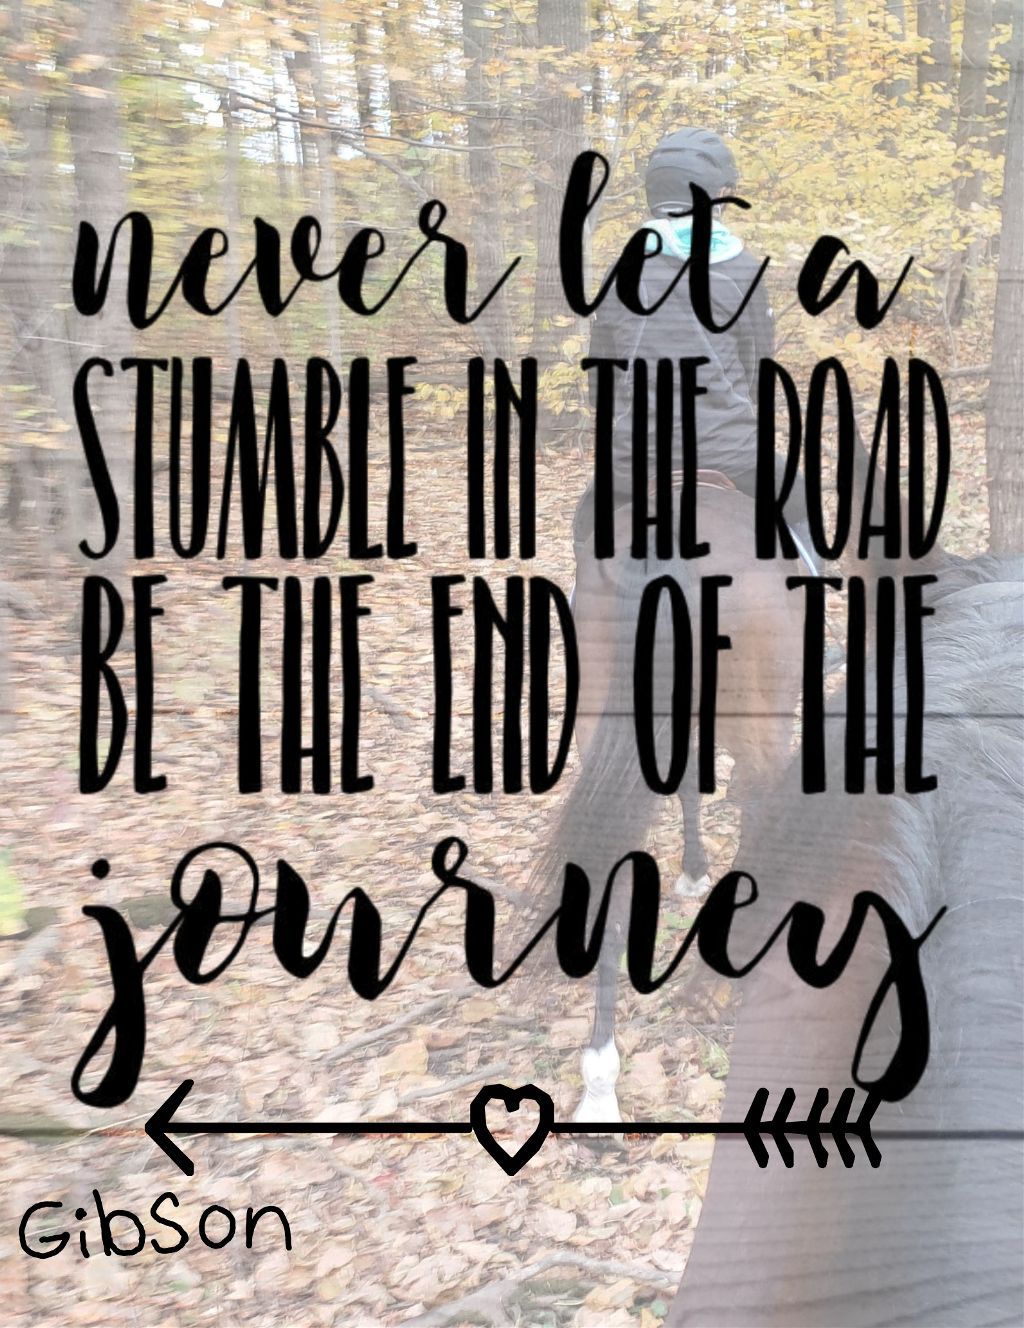 #quote #pony #trailride #forest #horse #gibson #lifequote #journey